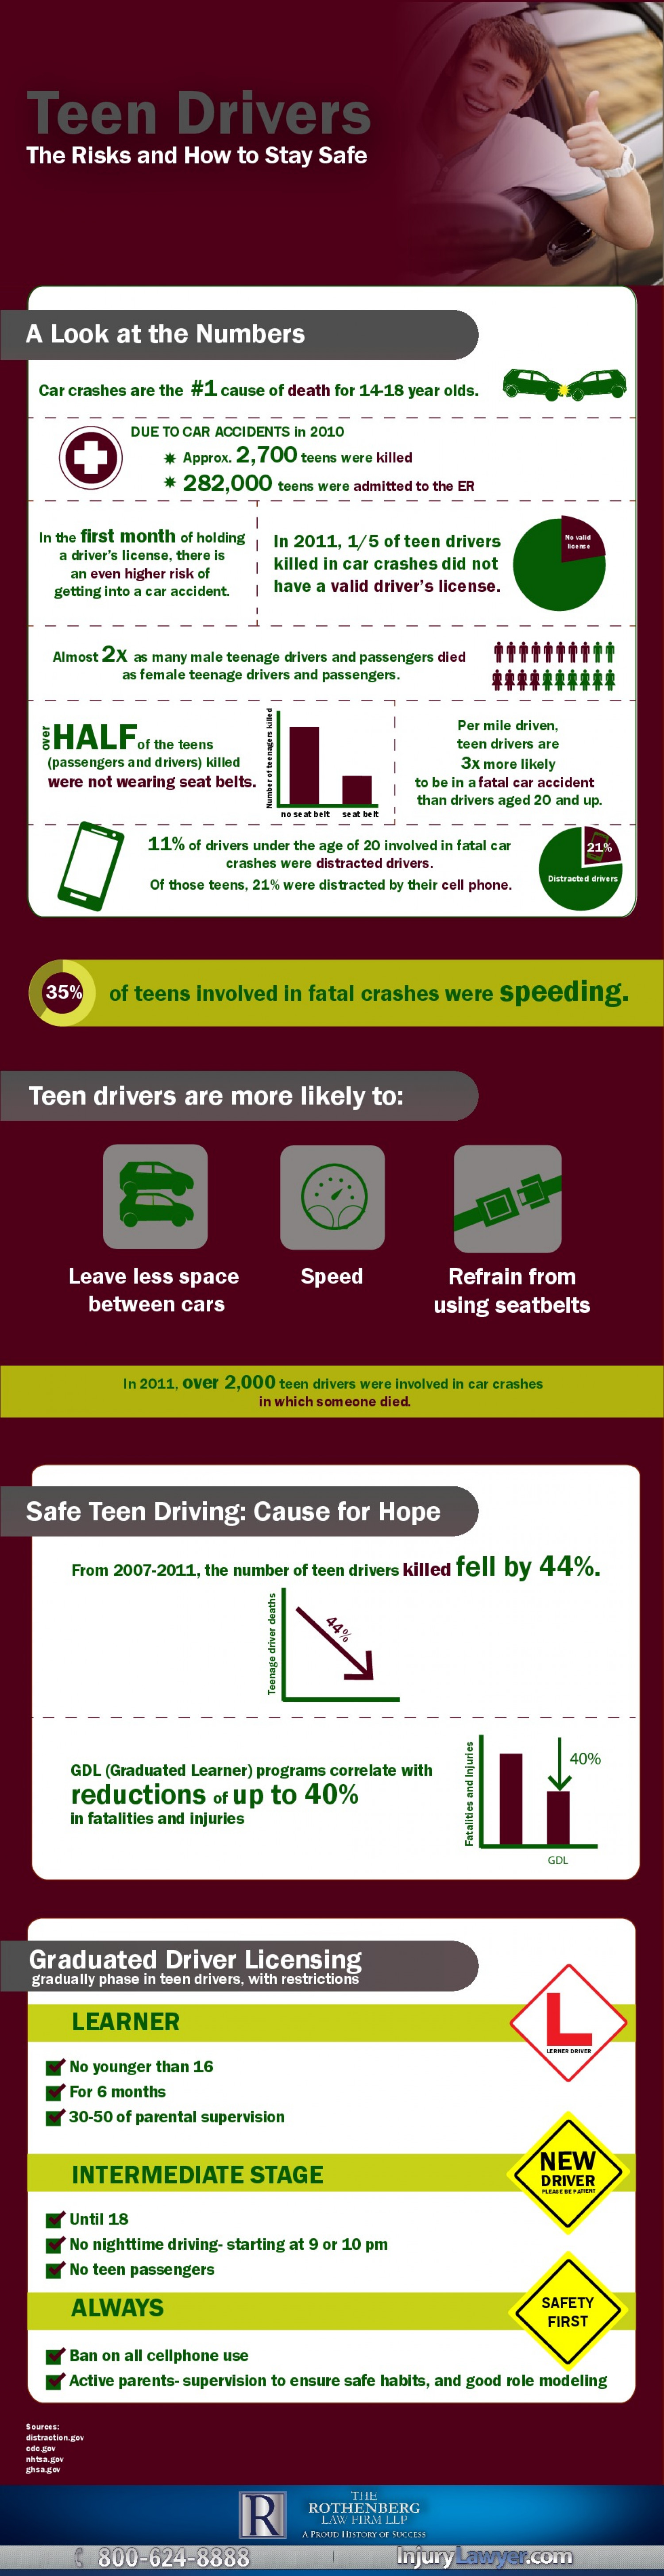 Teen Driving Infographic Infographic